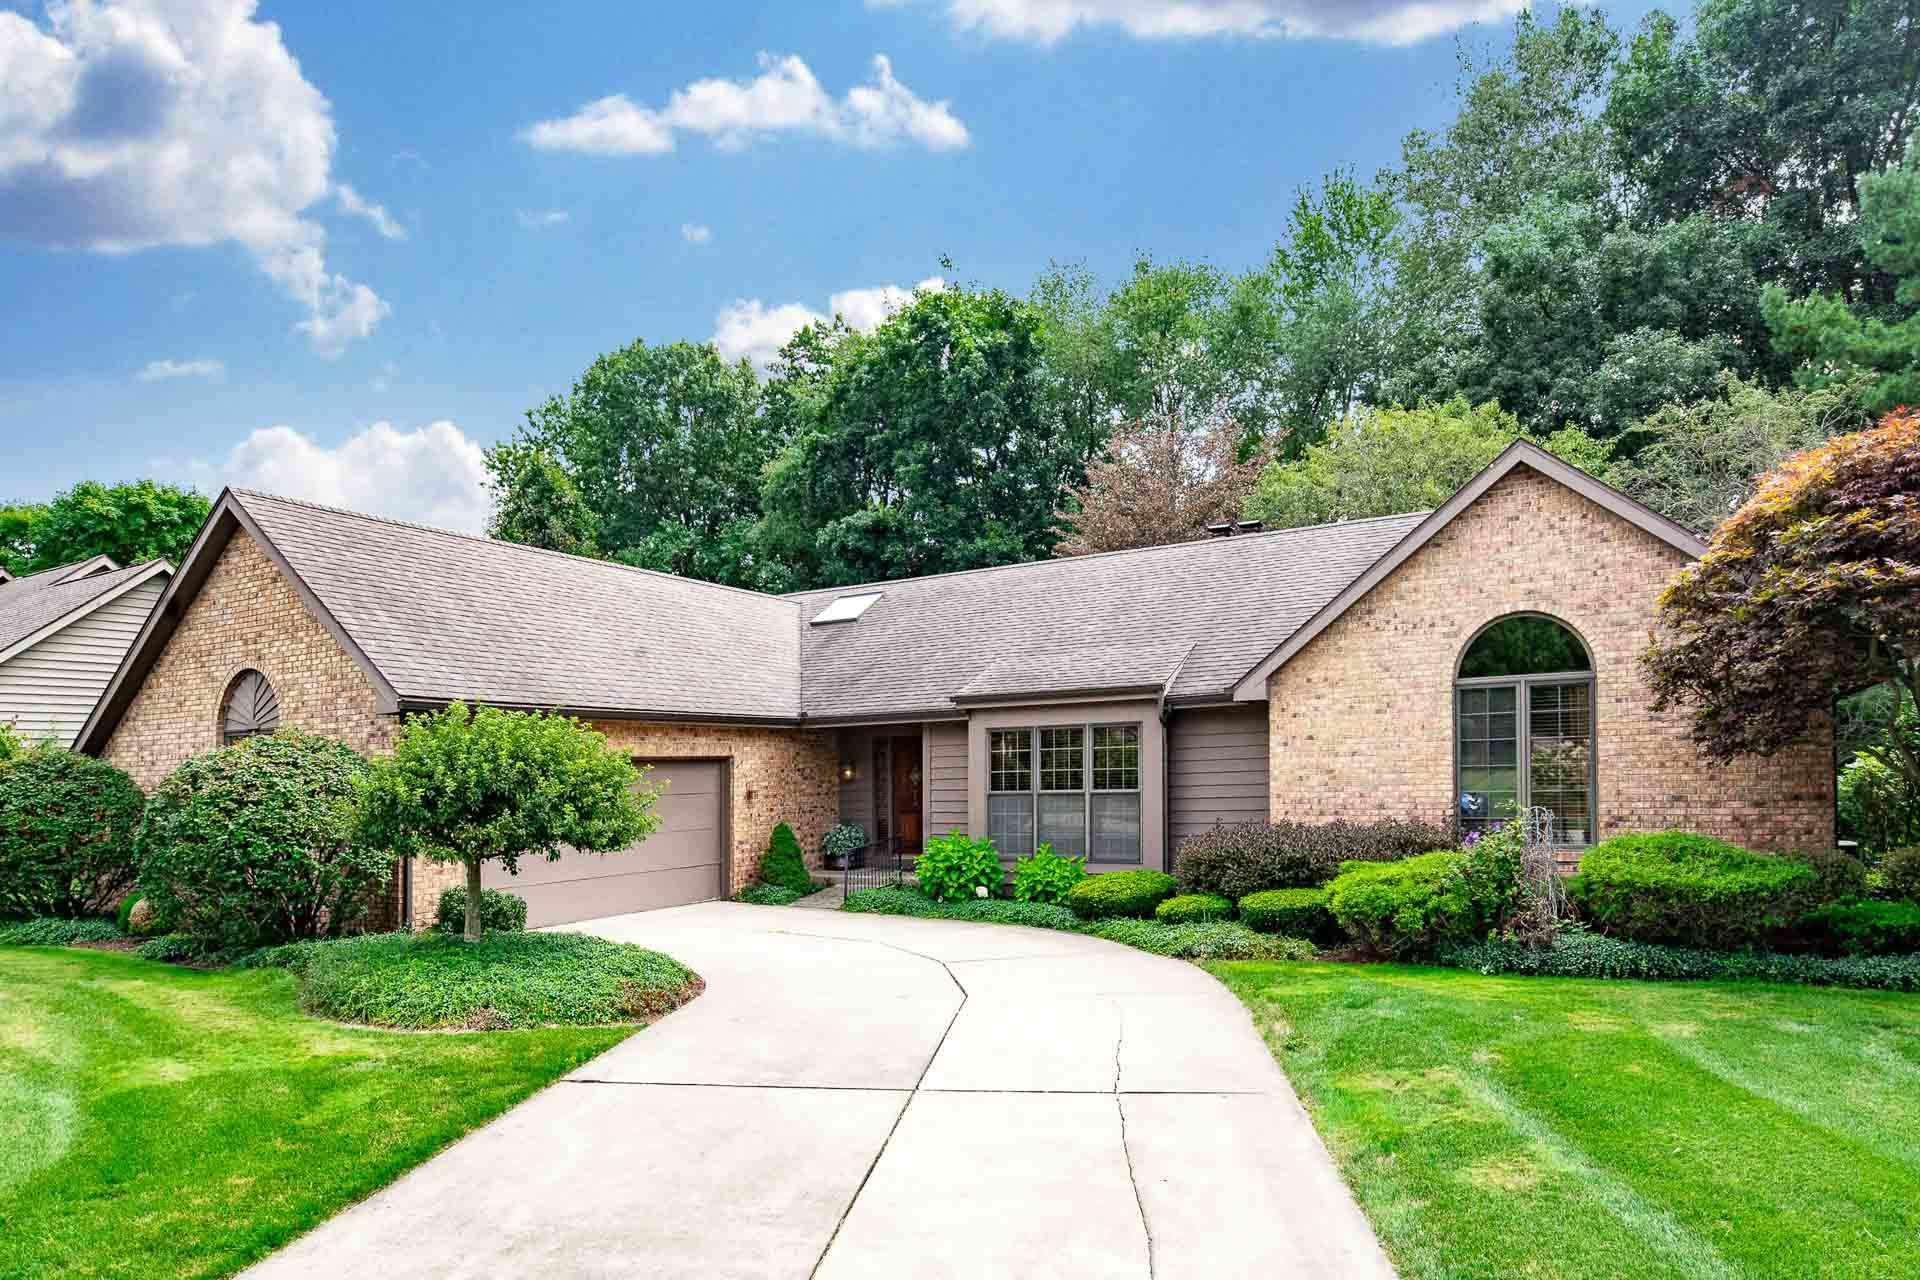 16290 Oak Hill Granger, IN 46530